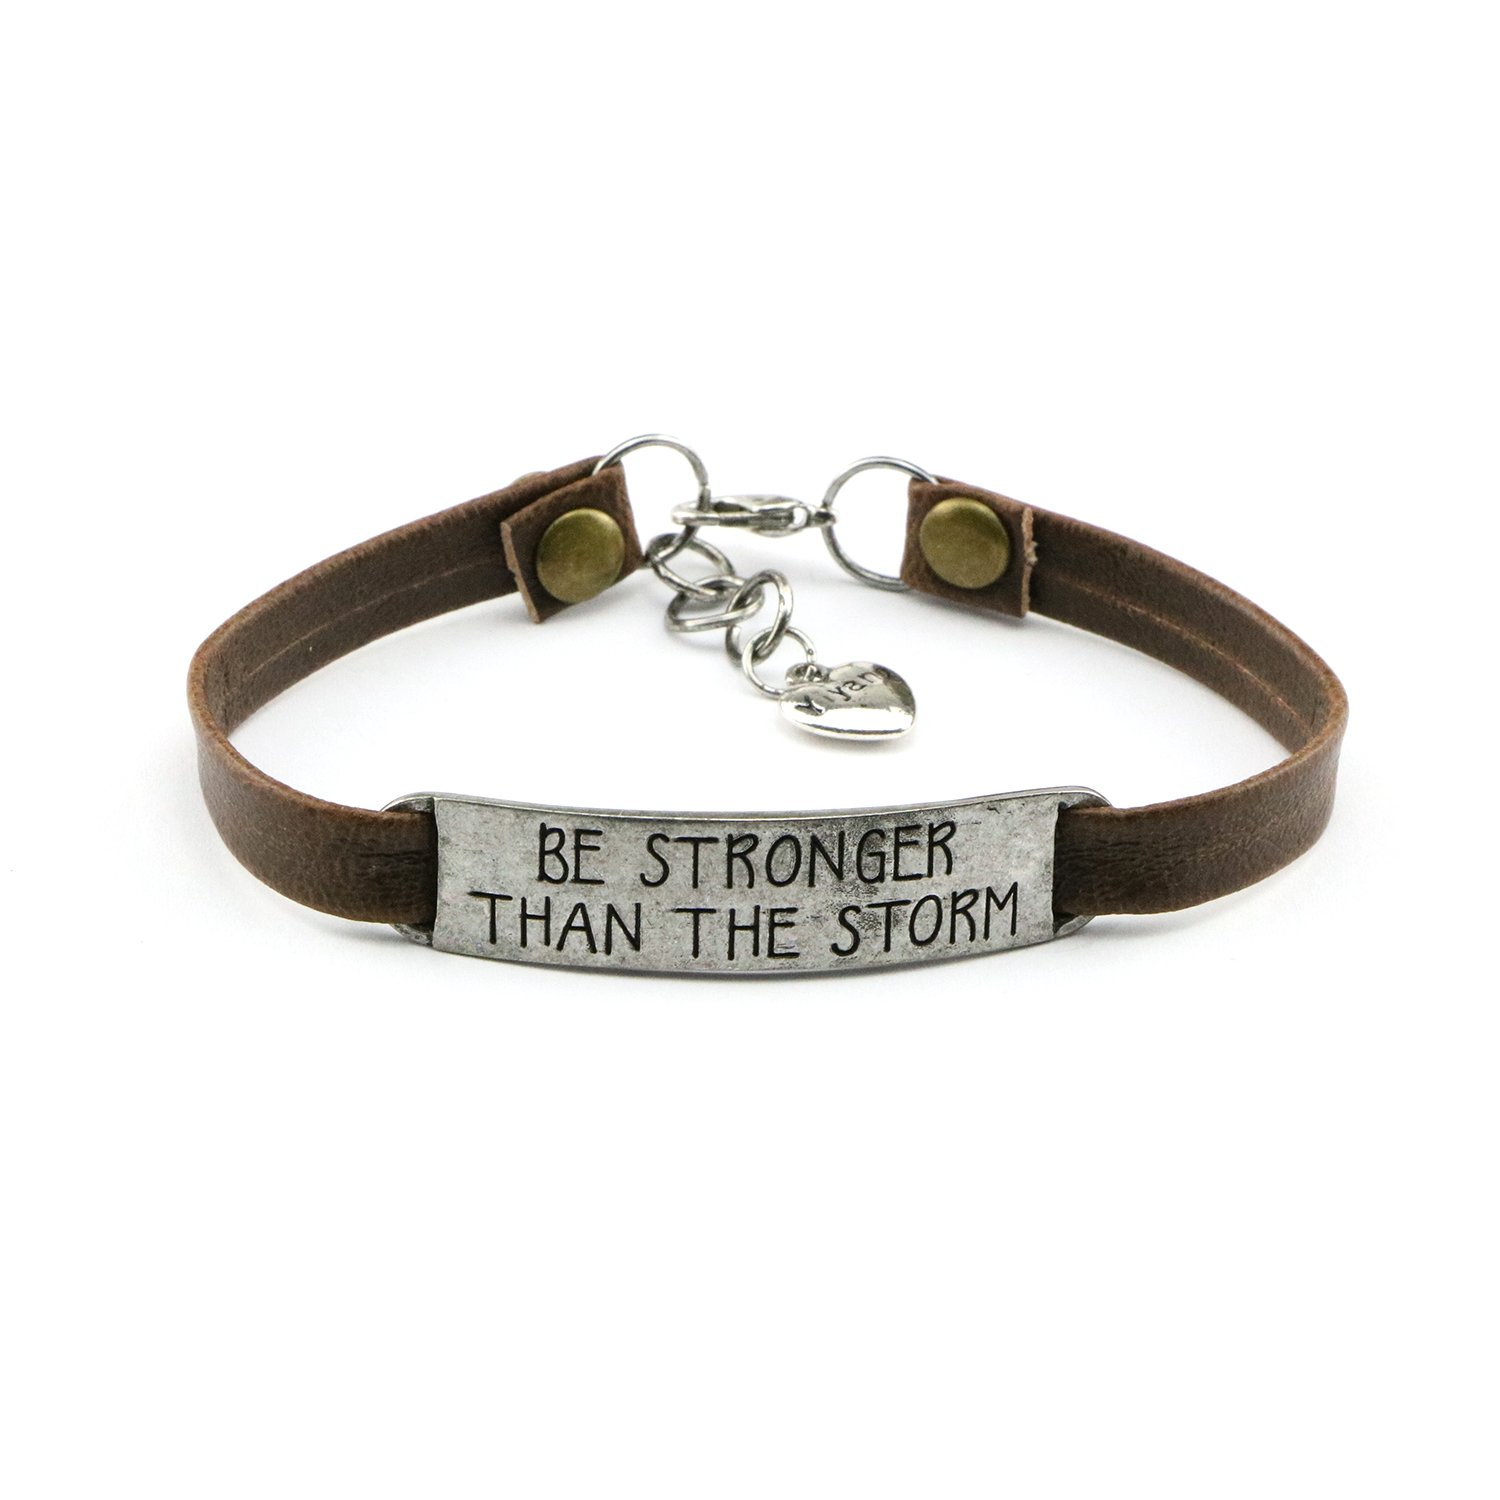 UNQJRY Inspirational Gift for Her Bracelet Brown Leather Jewelry Engraved Encouragement Quotes Be Stronger Than the Storm